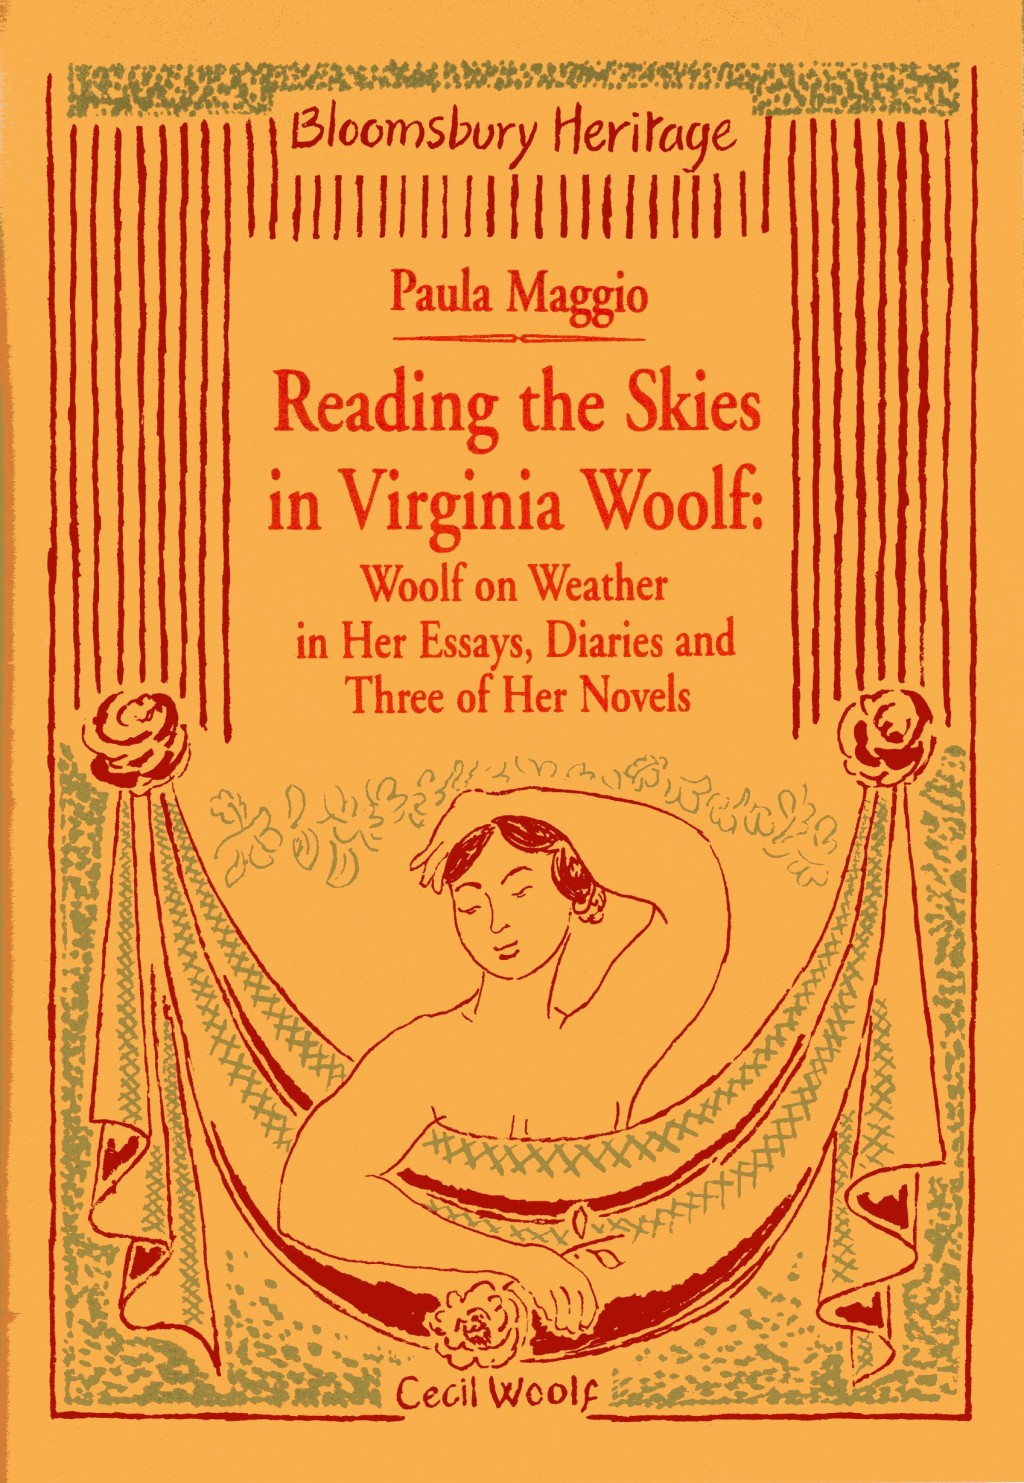 009 Reading The Skies Color016 Essay Example Virginia Woolf Unusual Essays Modern Pdf Woolf's Sketching Past Fiction Analysis Large